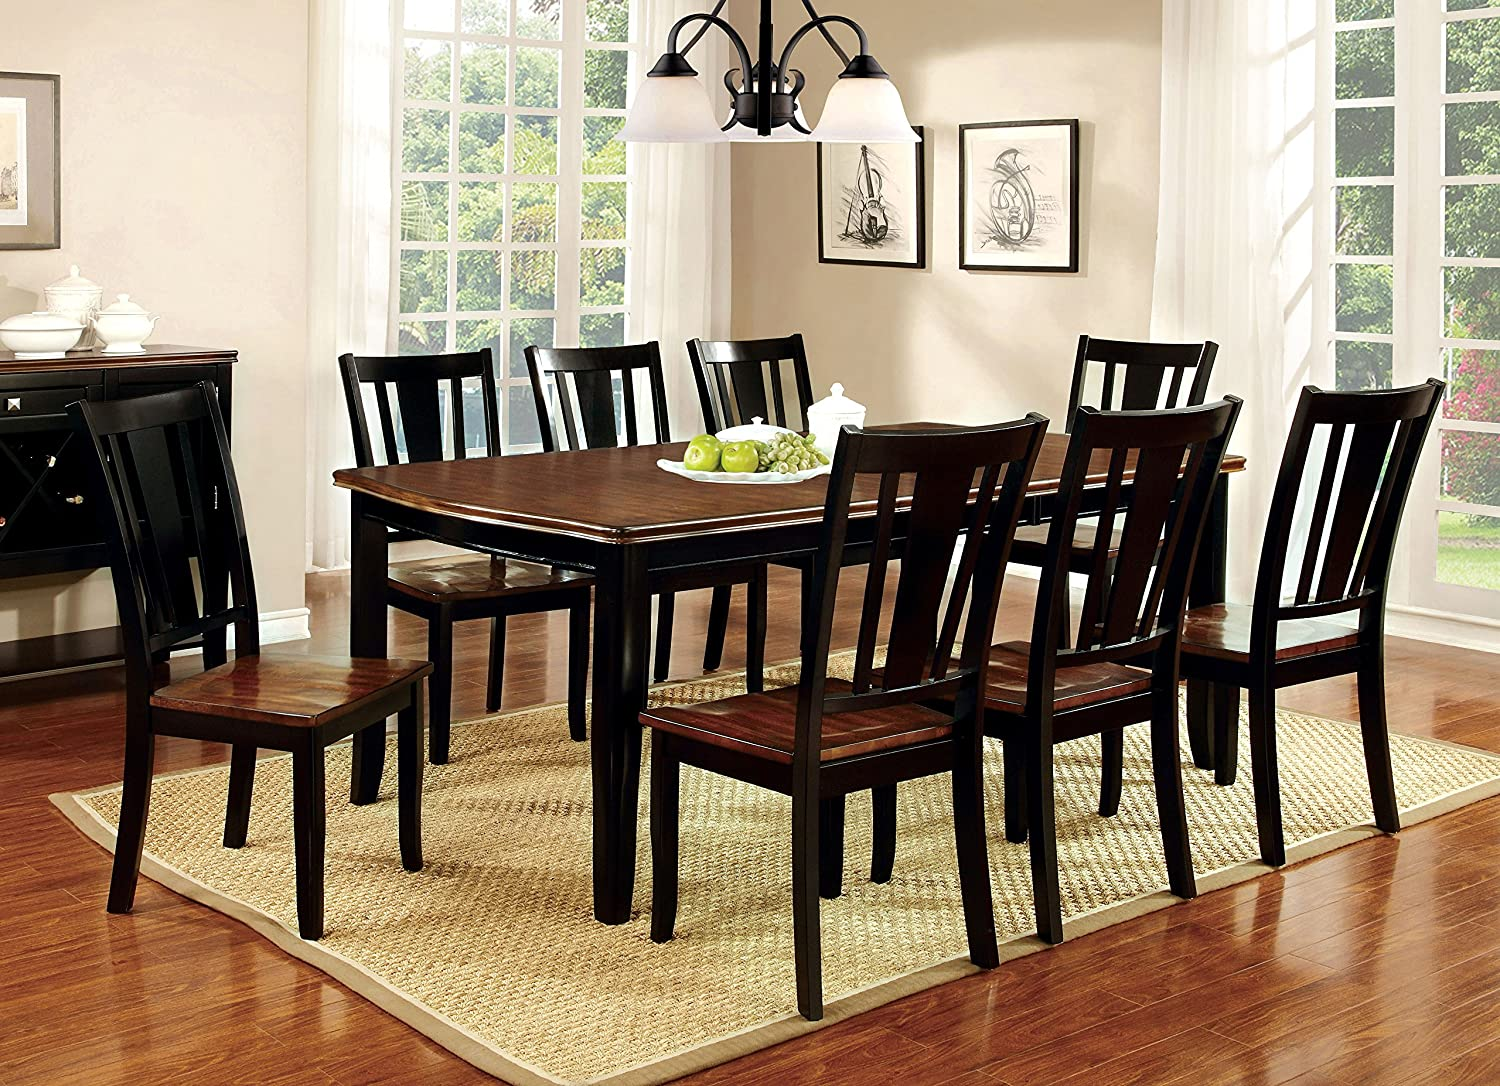 Amazon.com Furniture of America Macchio 9-Piece Transitional Dining Set Cherry/Black Kitchen \u0026 Dining : 42 dining table sets - pezcame.com